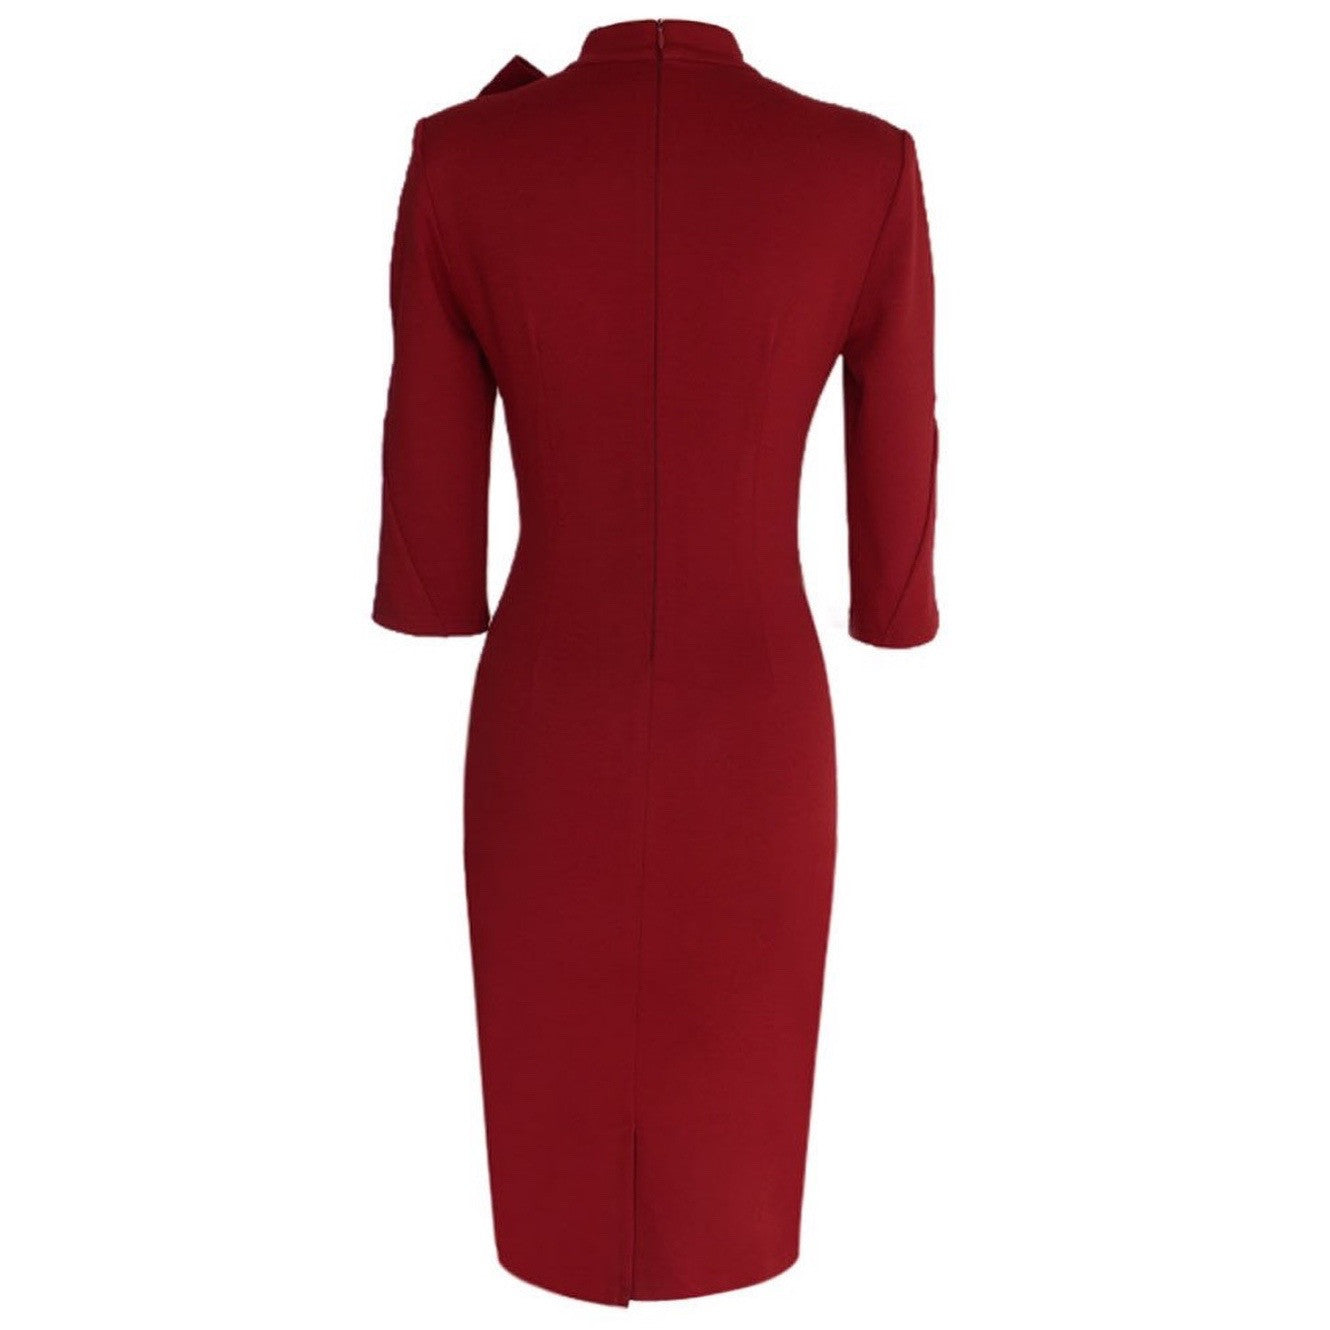 With its classic hourglass silhouette, this stunning deep red dress evokes the polished sophistication of 40s Hollywood style.